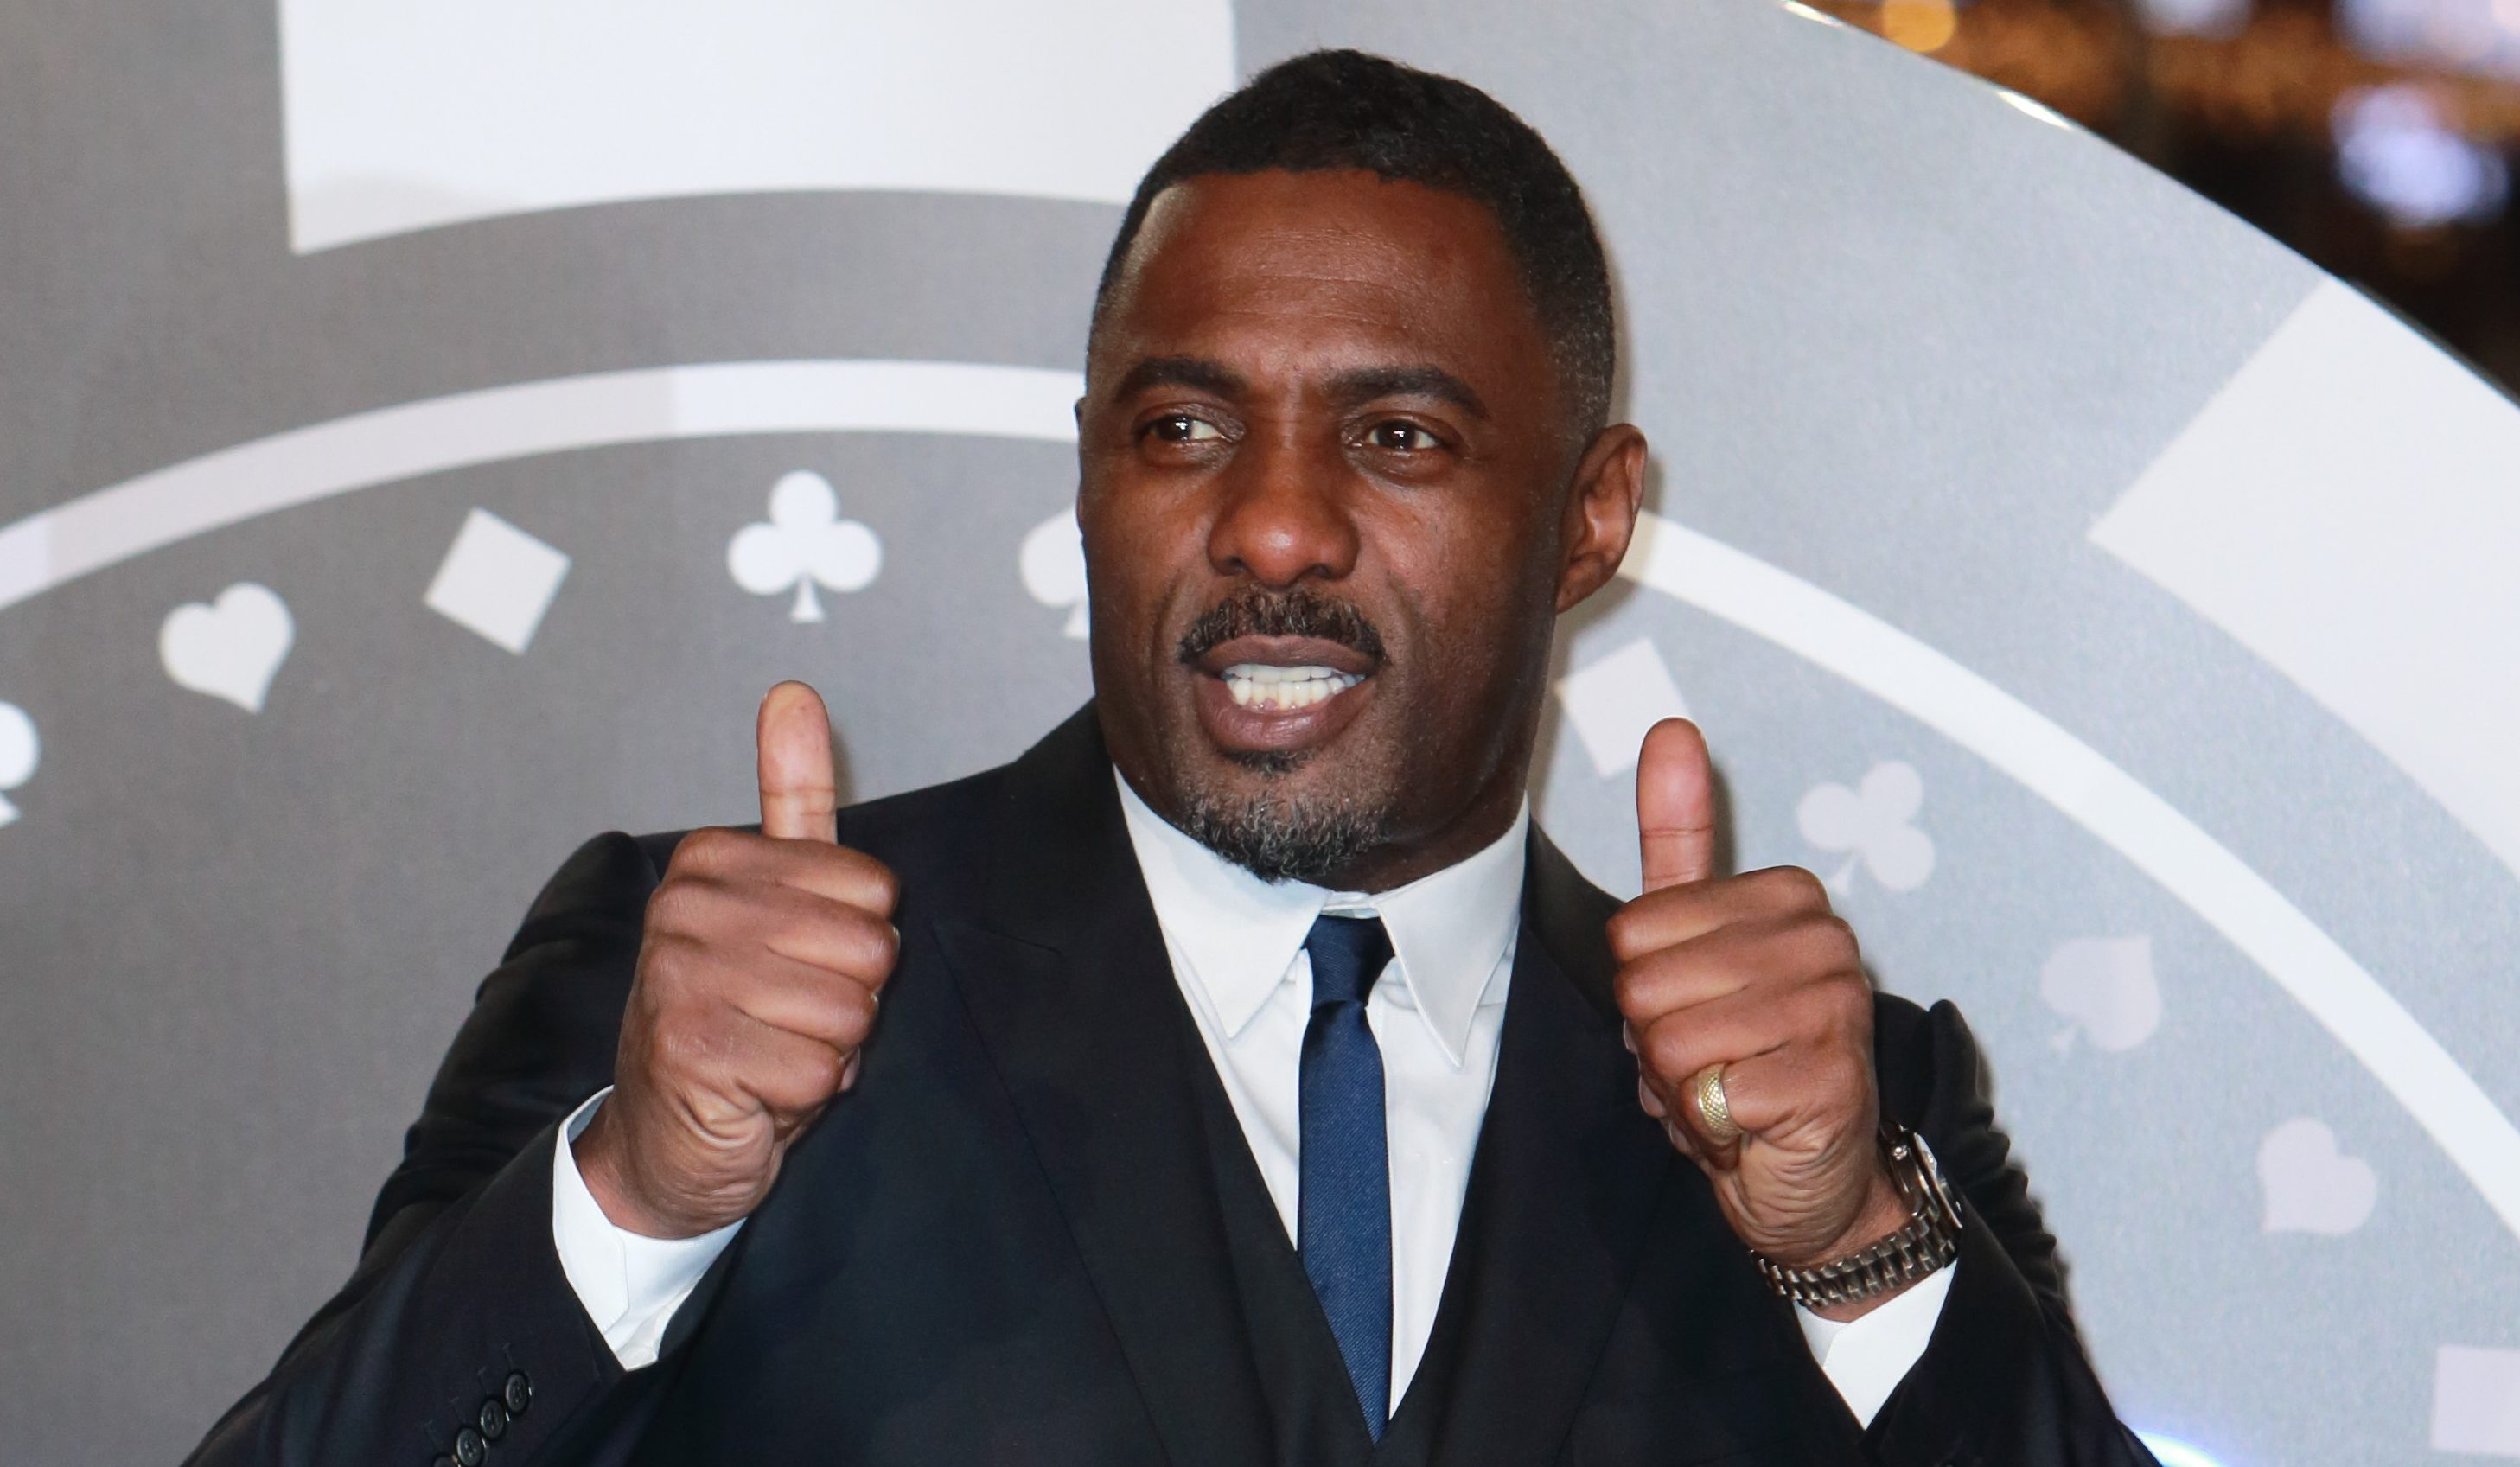 Idris Elba Proposes To Girlfriend Sabrina Dhowre In Front Of Cheering Crowd